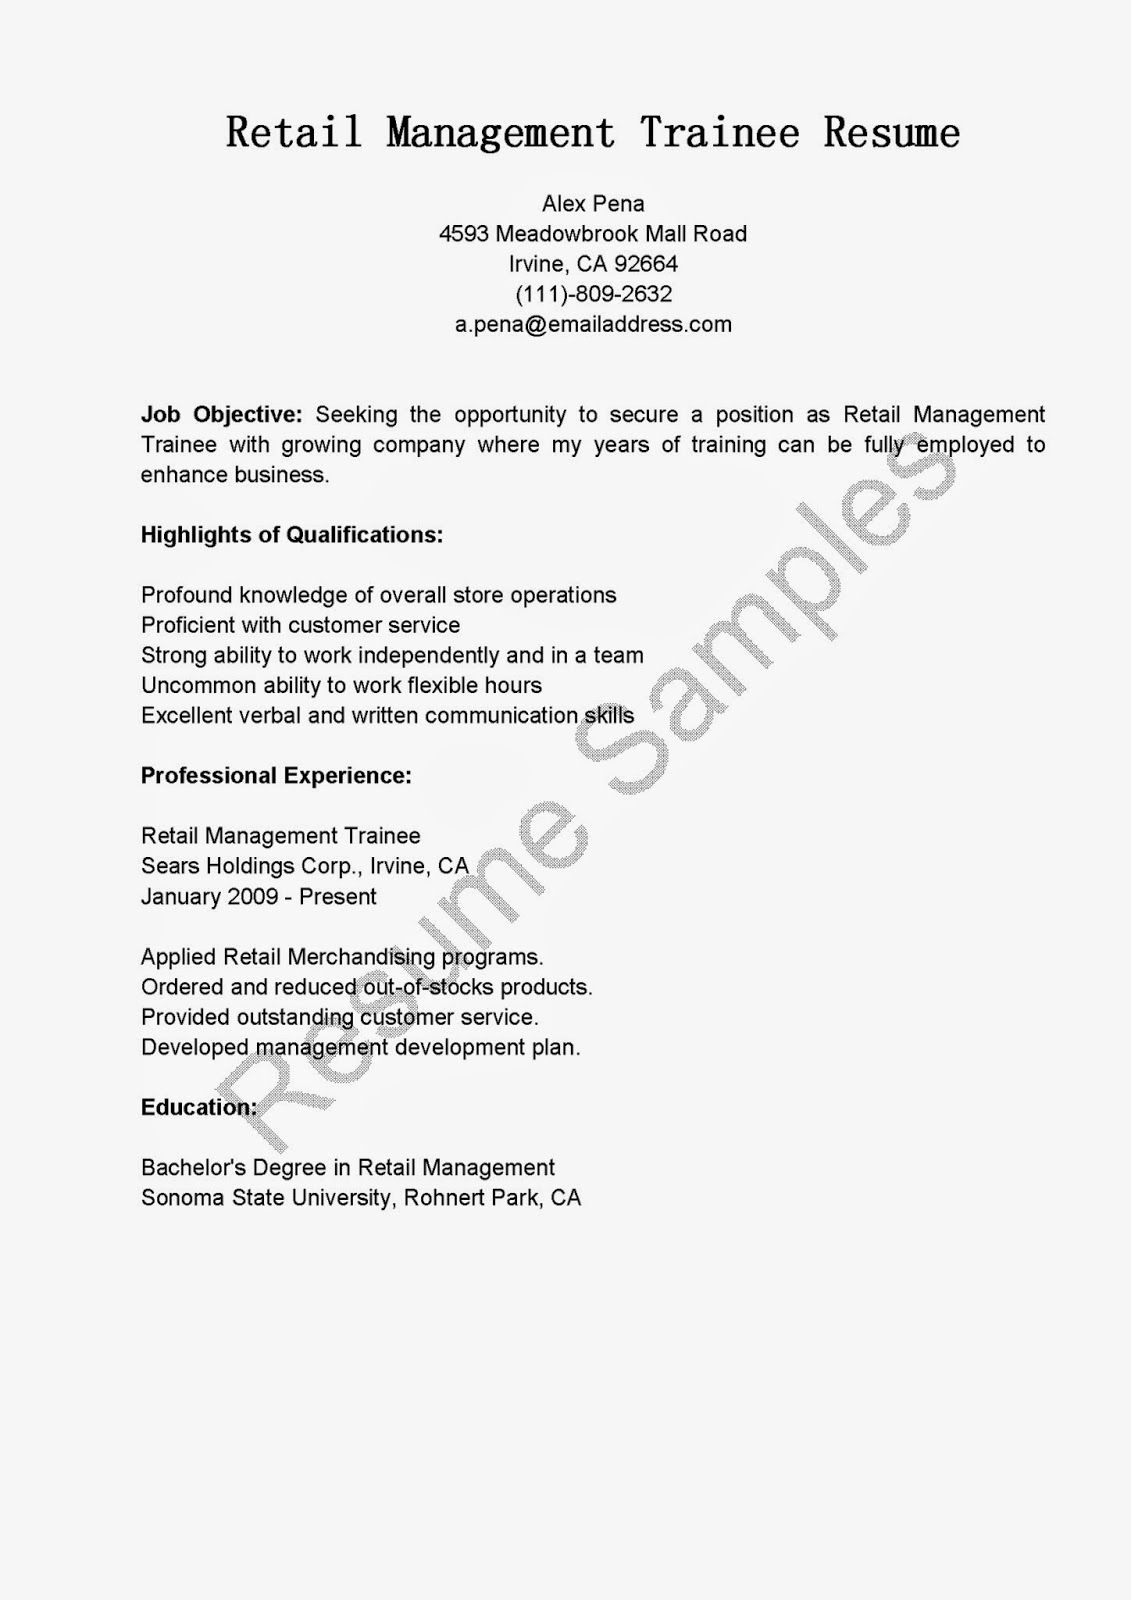 retail management trainee resume sample for freshers objective laborer project manager Resume Management Trainee Resume For Freshers